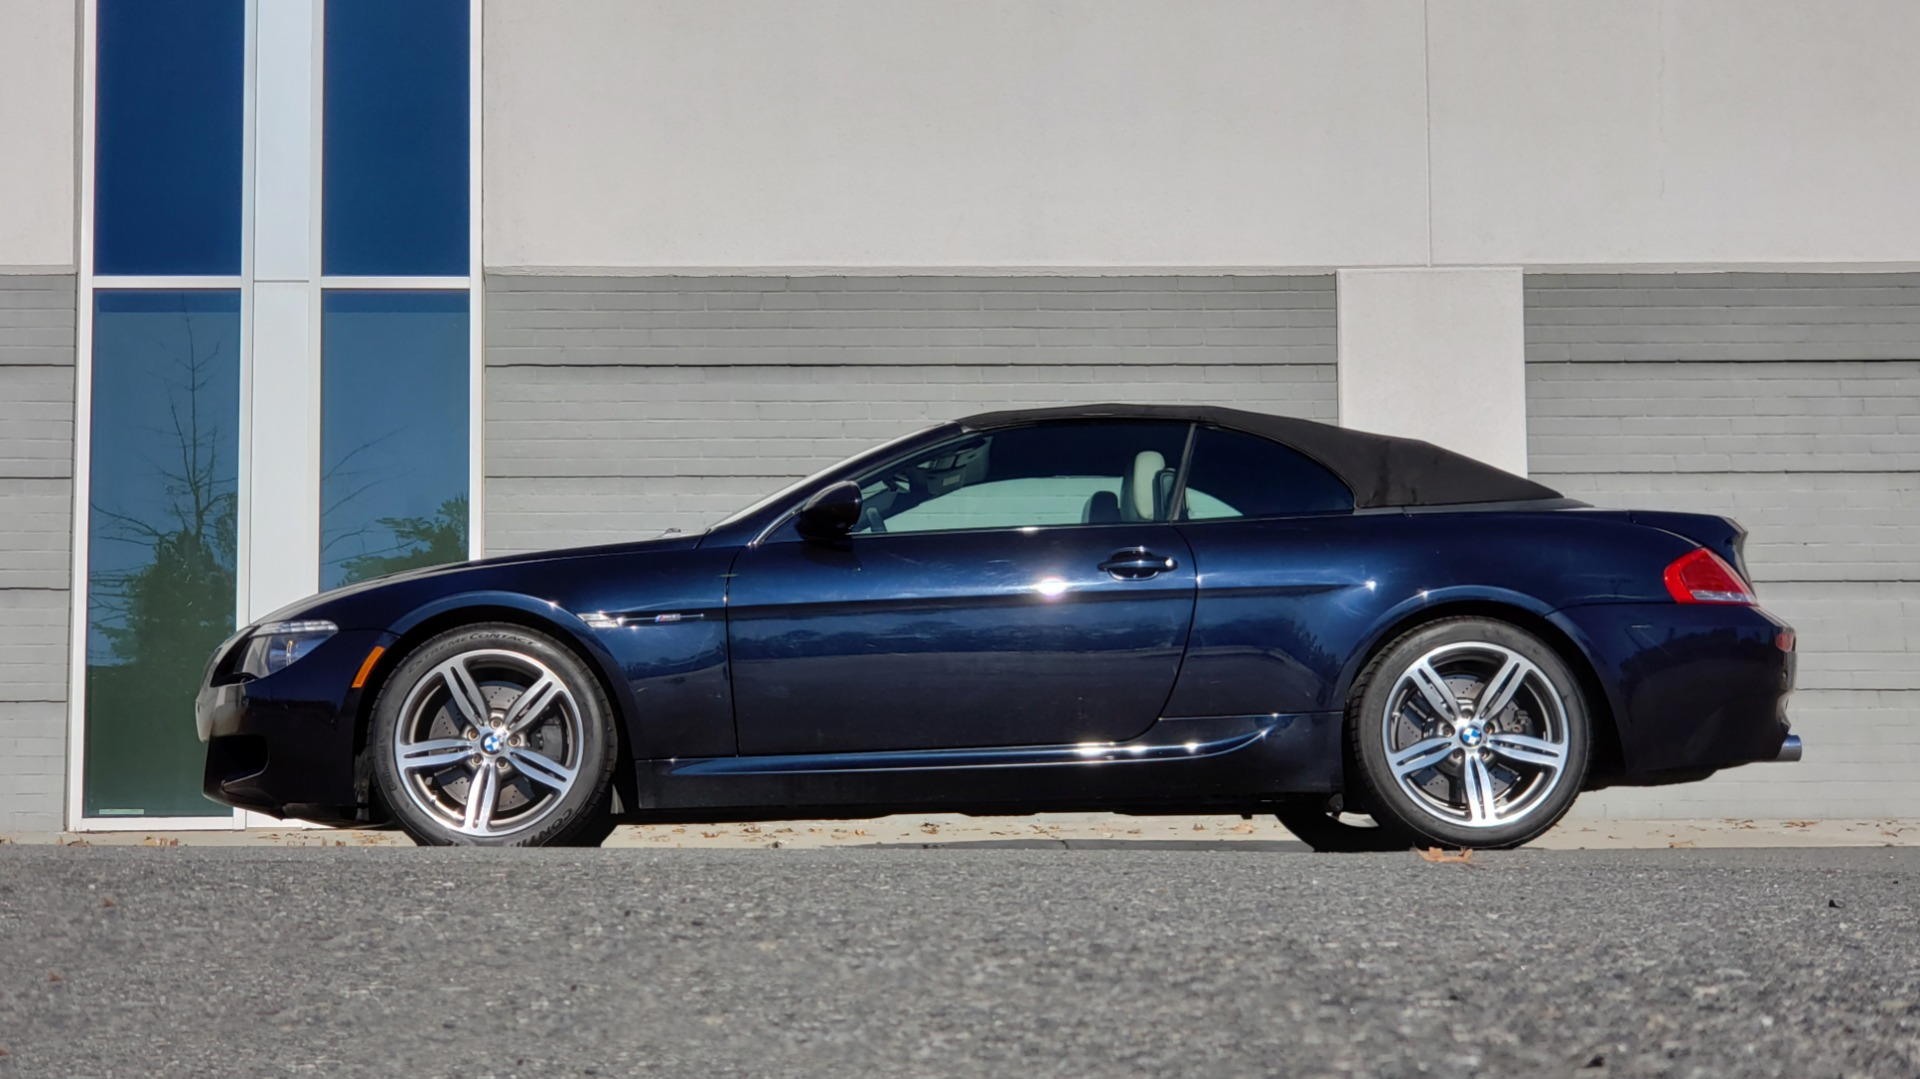 Used 2009 BMW M6 CONVERTIBLE / 5.0L V10 (500HP) / PREM SND / HUD / 19IN WHEELS for sale $24,999 at Formula Imports in Charlotte NC 28227 11